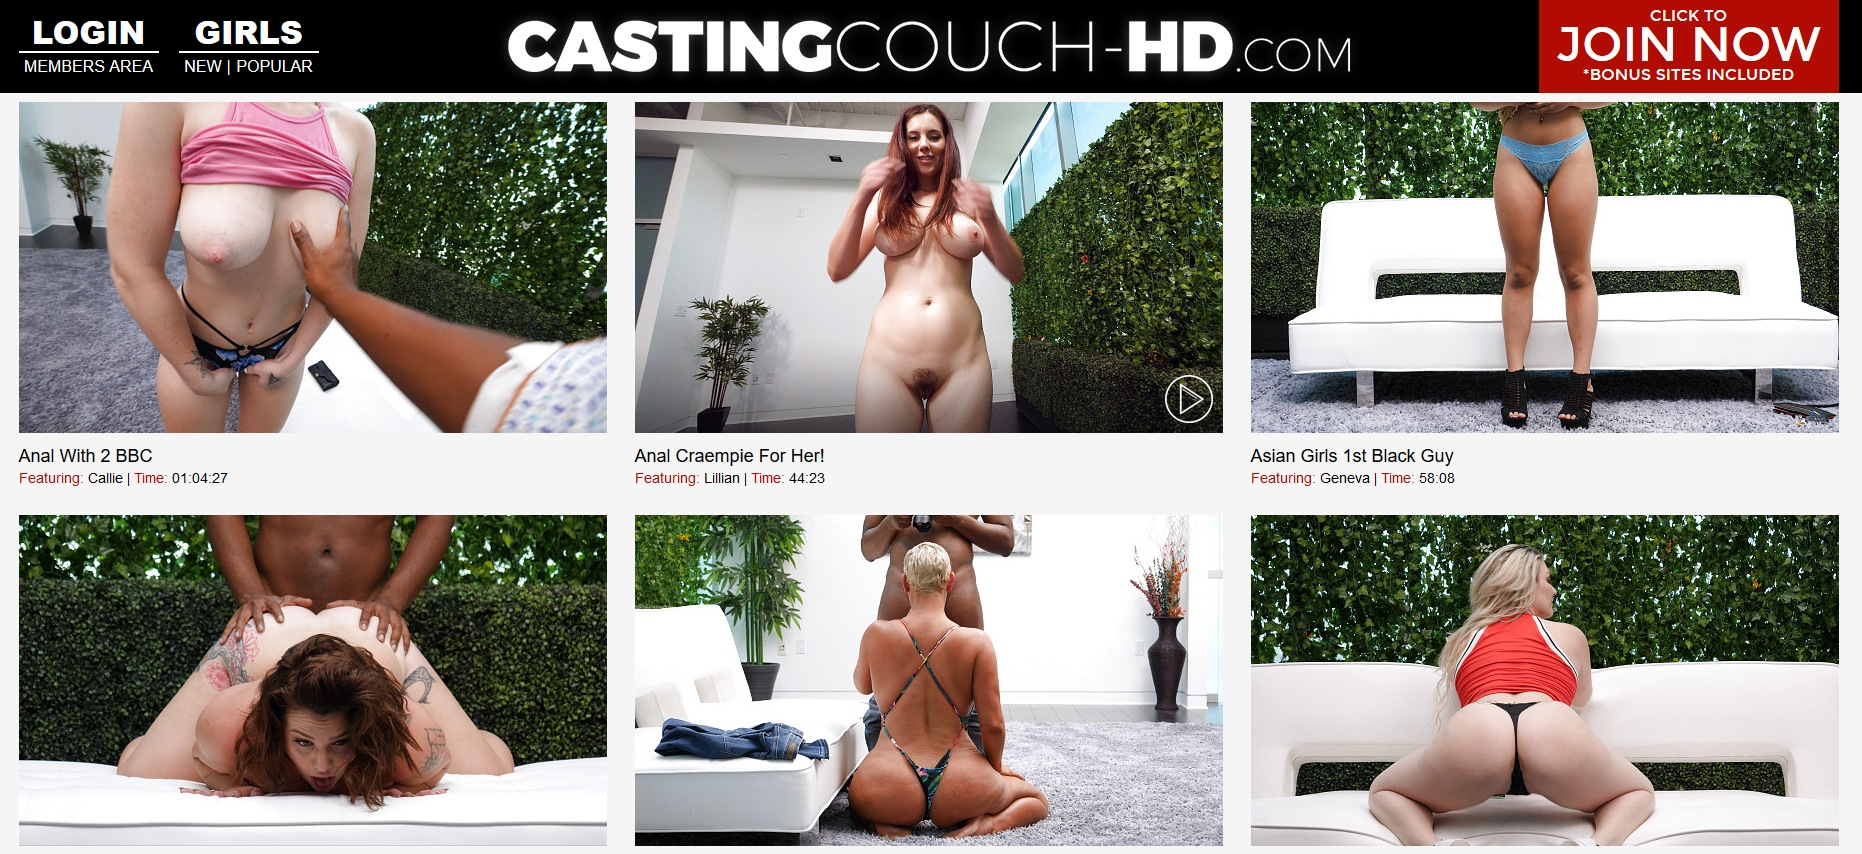 https://piratepass.pw/wp-content/uploads/2020/11/castingcouch-hd.com-LlpiQJkNNchWIjcnjKfZiWgJ.jpg pass